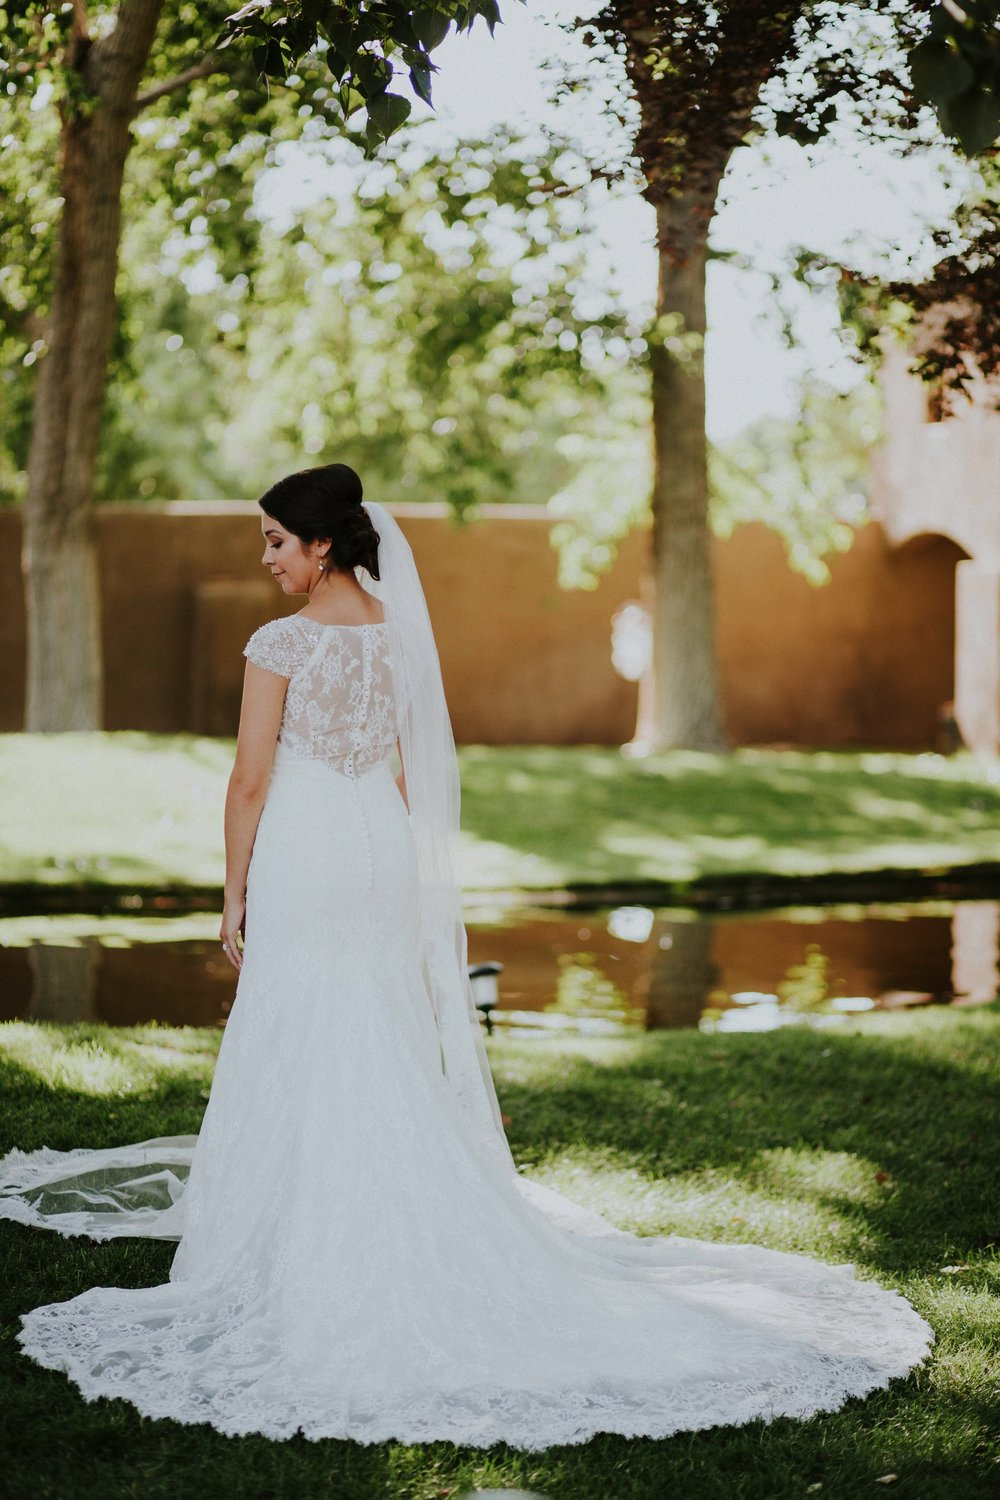 00000000000000084_casa-rondena-winery-wedding-photos_Cosner_Los-Ranchos-New-Mexico-Wedding-Photographer-56.jpg